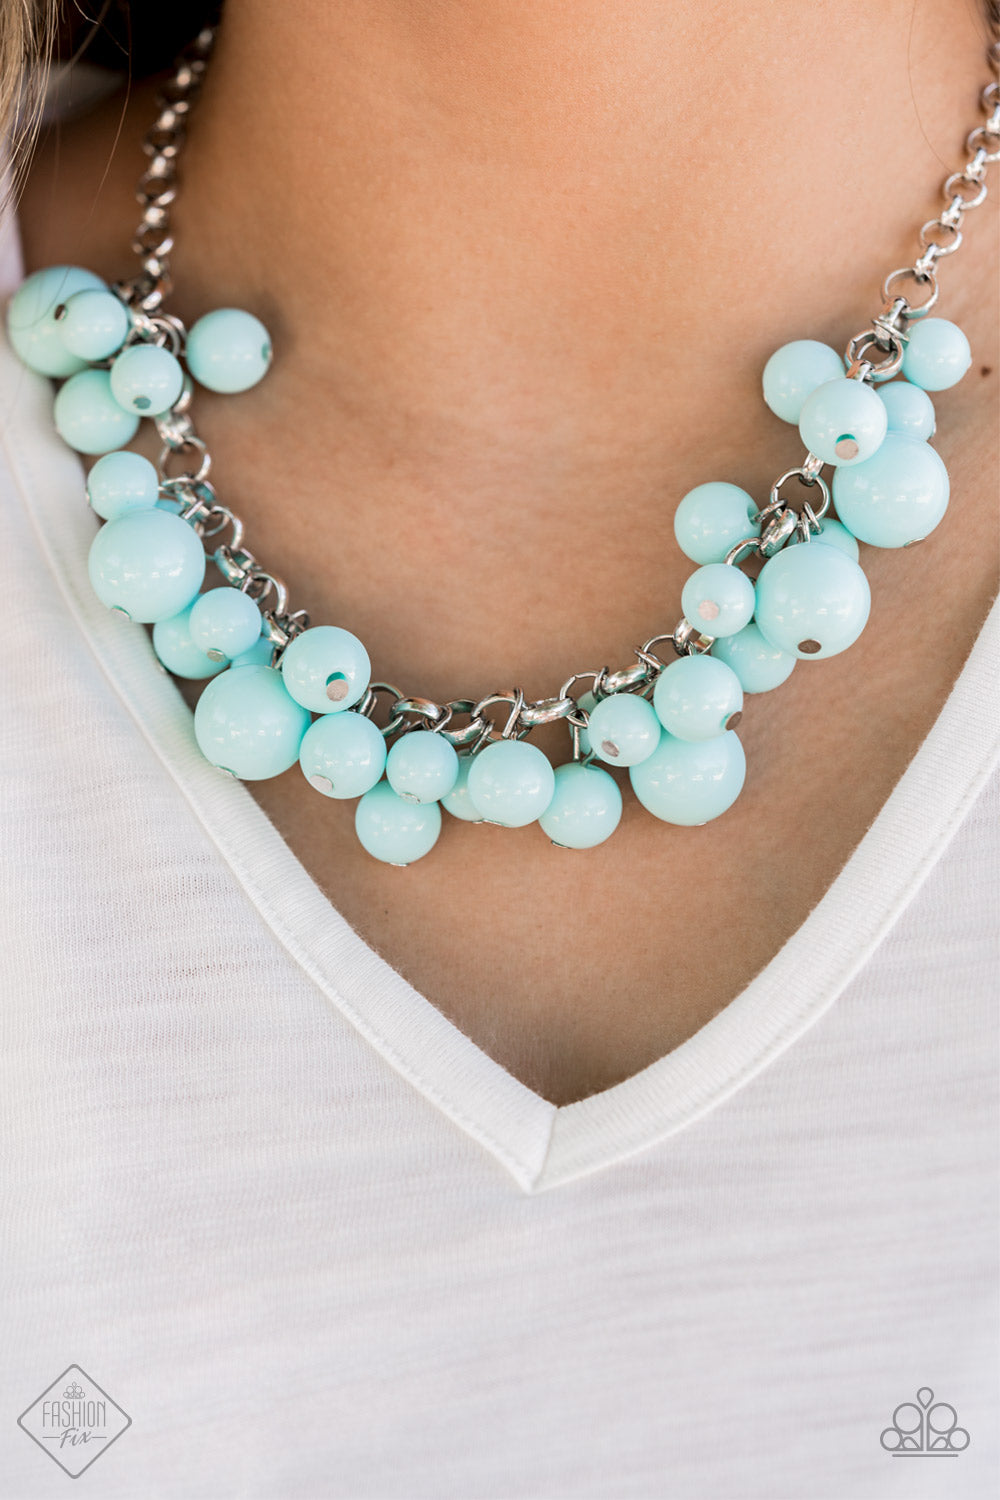 Walk This BROADWAY - Blue Paparazzi Necklace - Pink Dragon Jewels